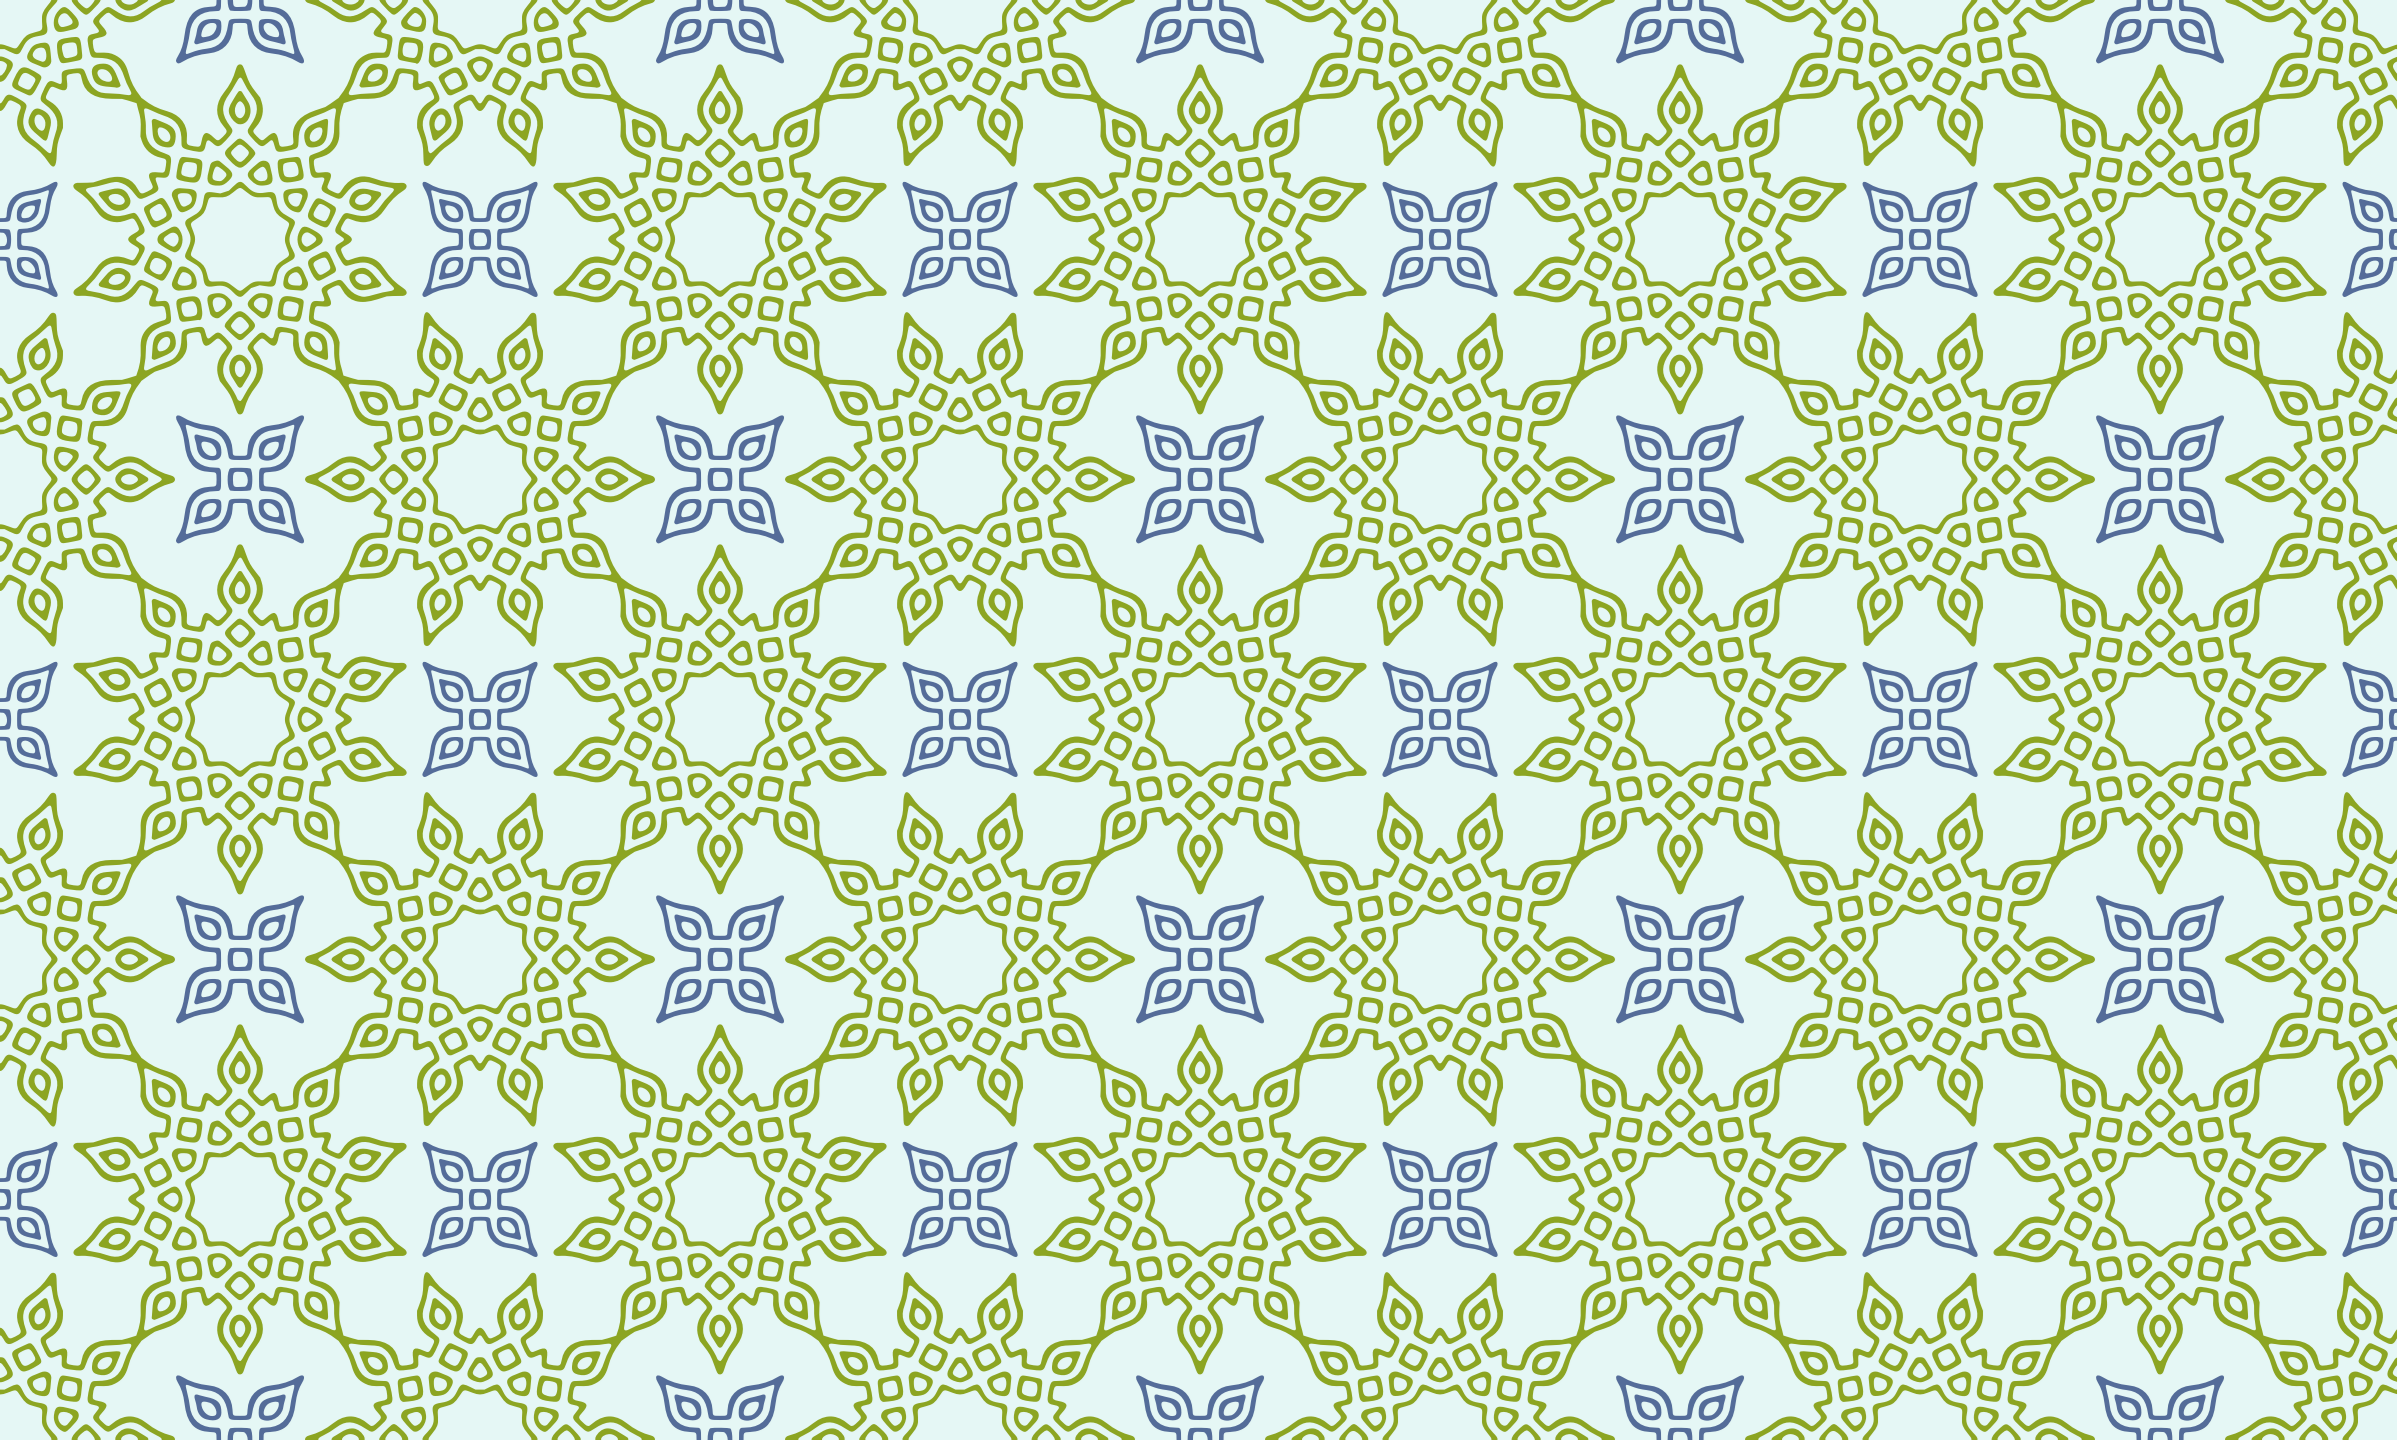 Background pattern 278 (colour) by Firkin